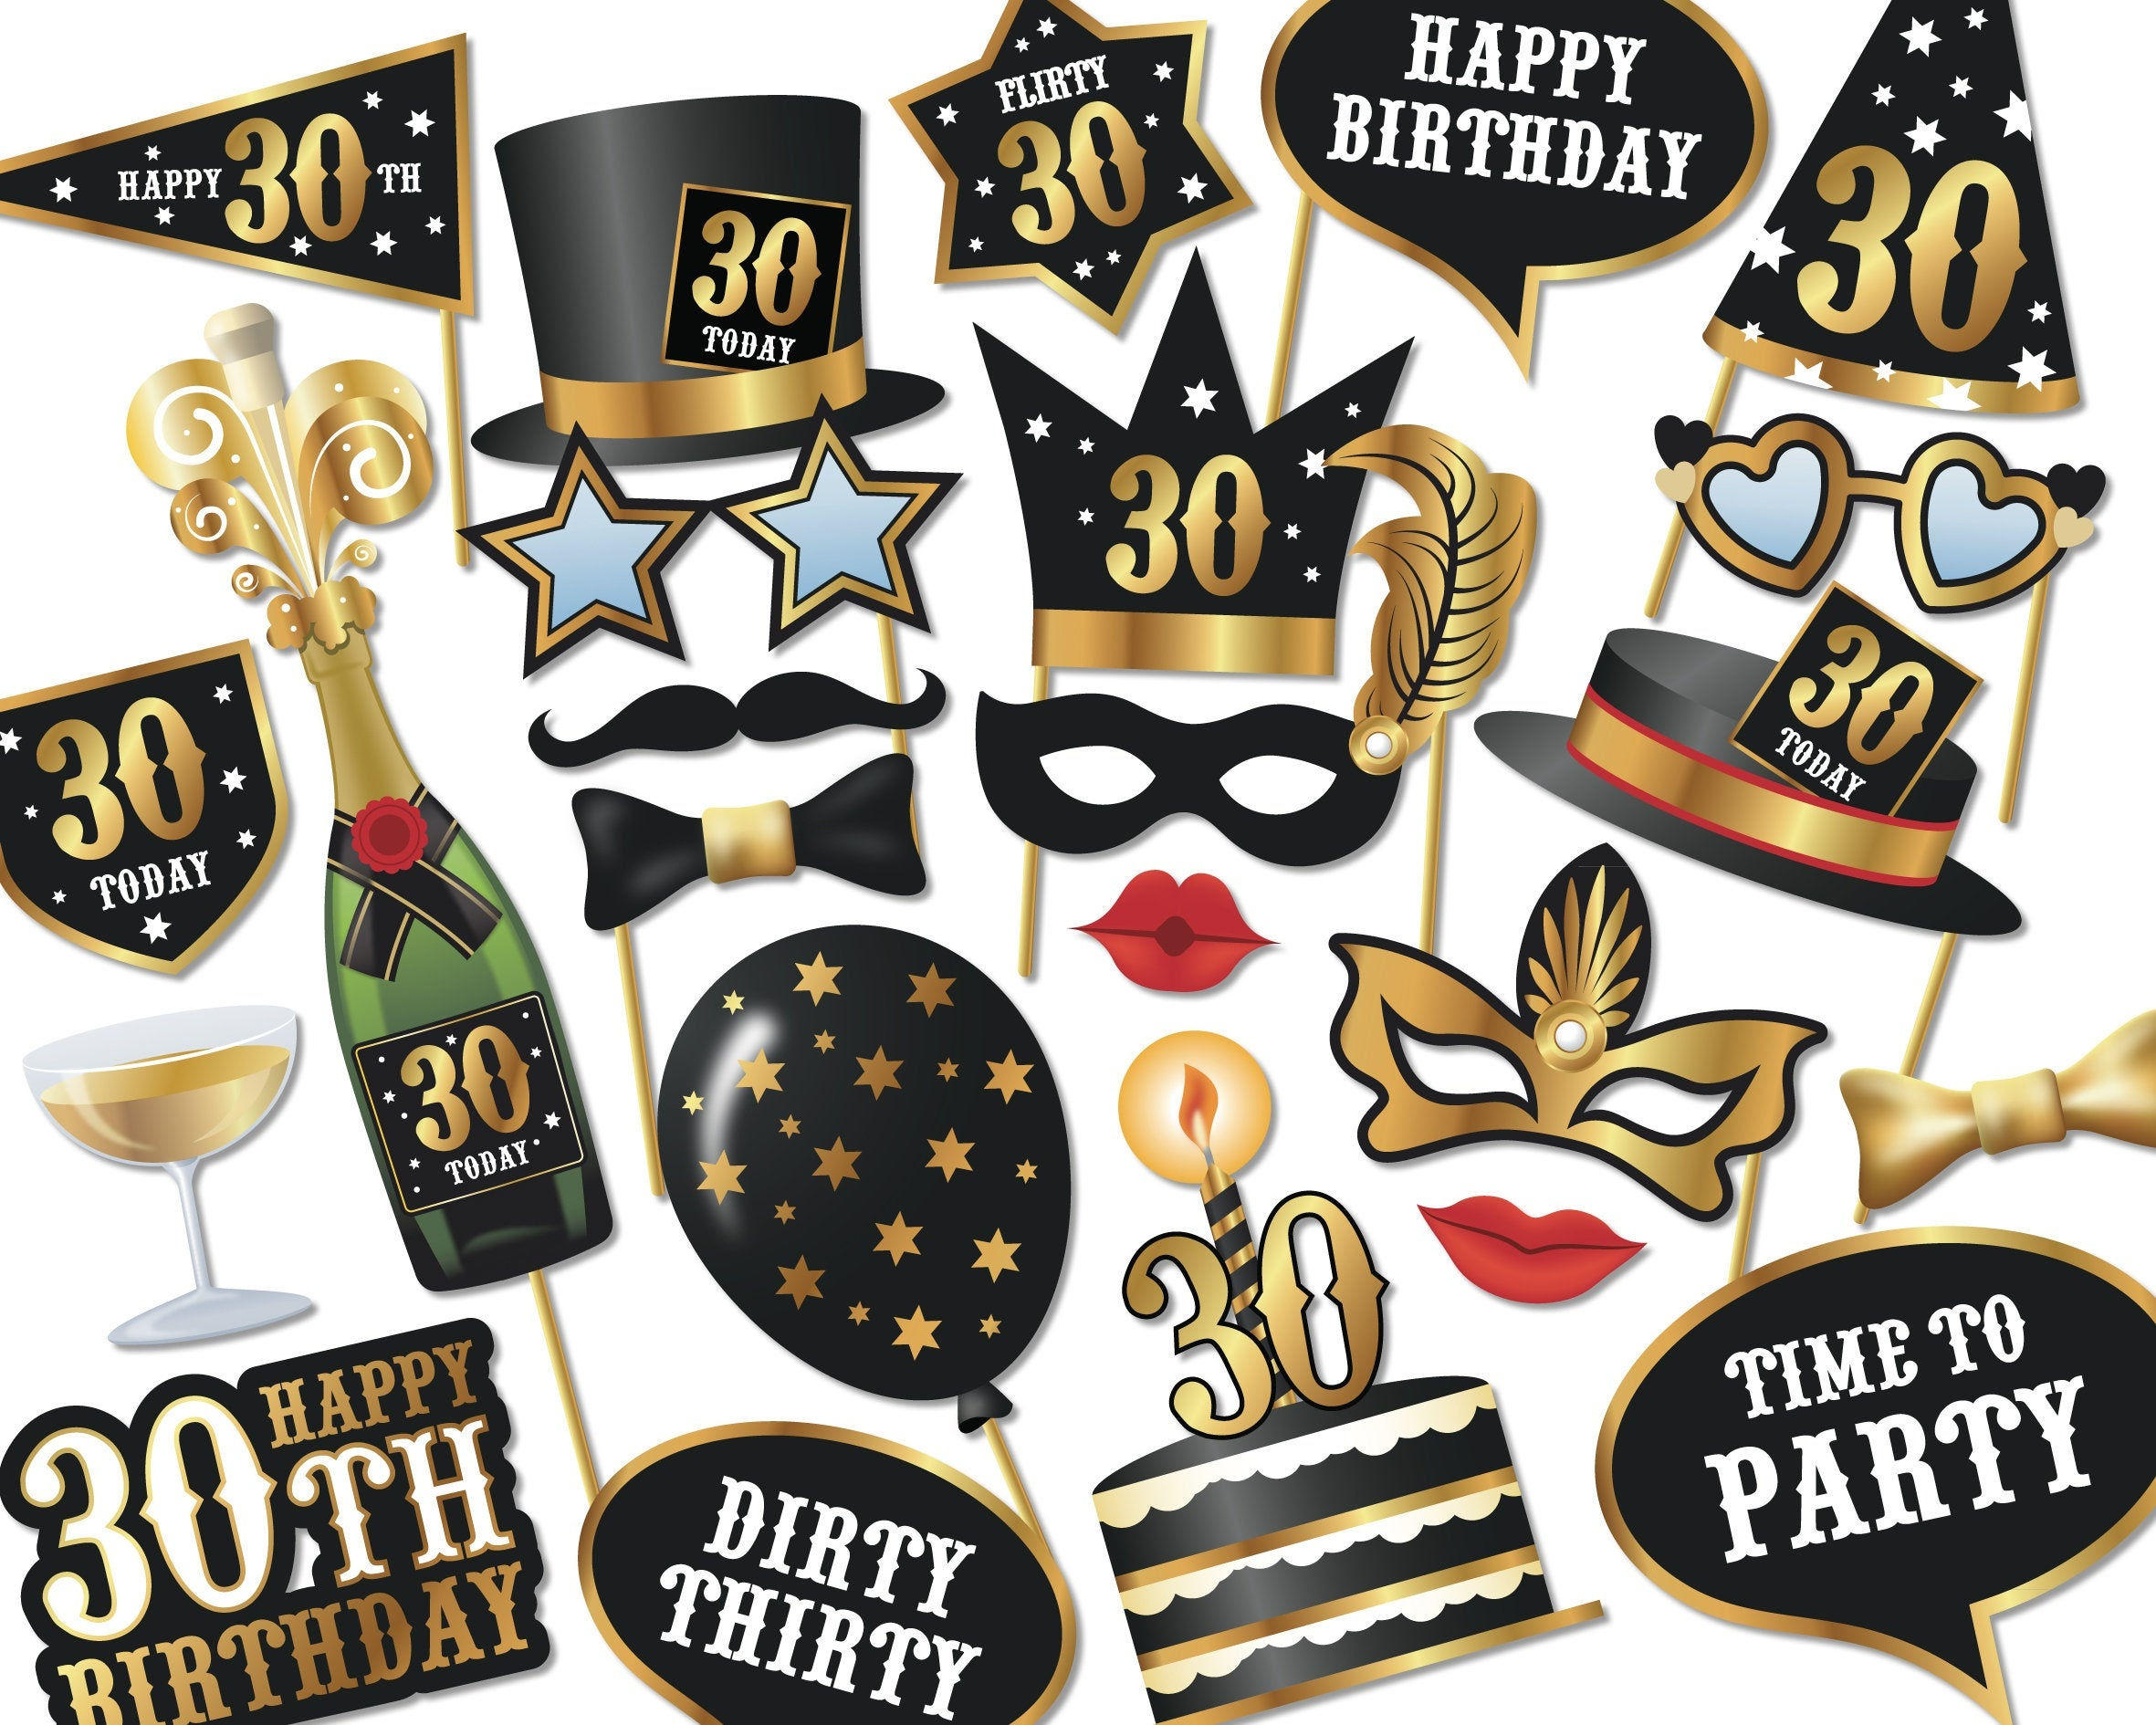 30Th Birthday Photo Booth Props Instant Download Printable   Etsy - Free Printable 30Th Birthday Photo Booth Props